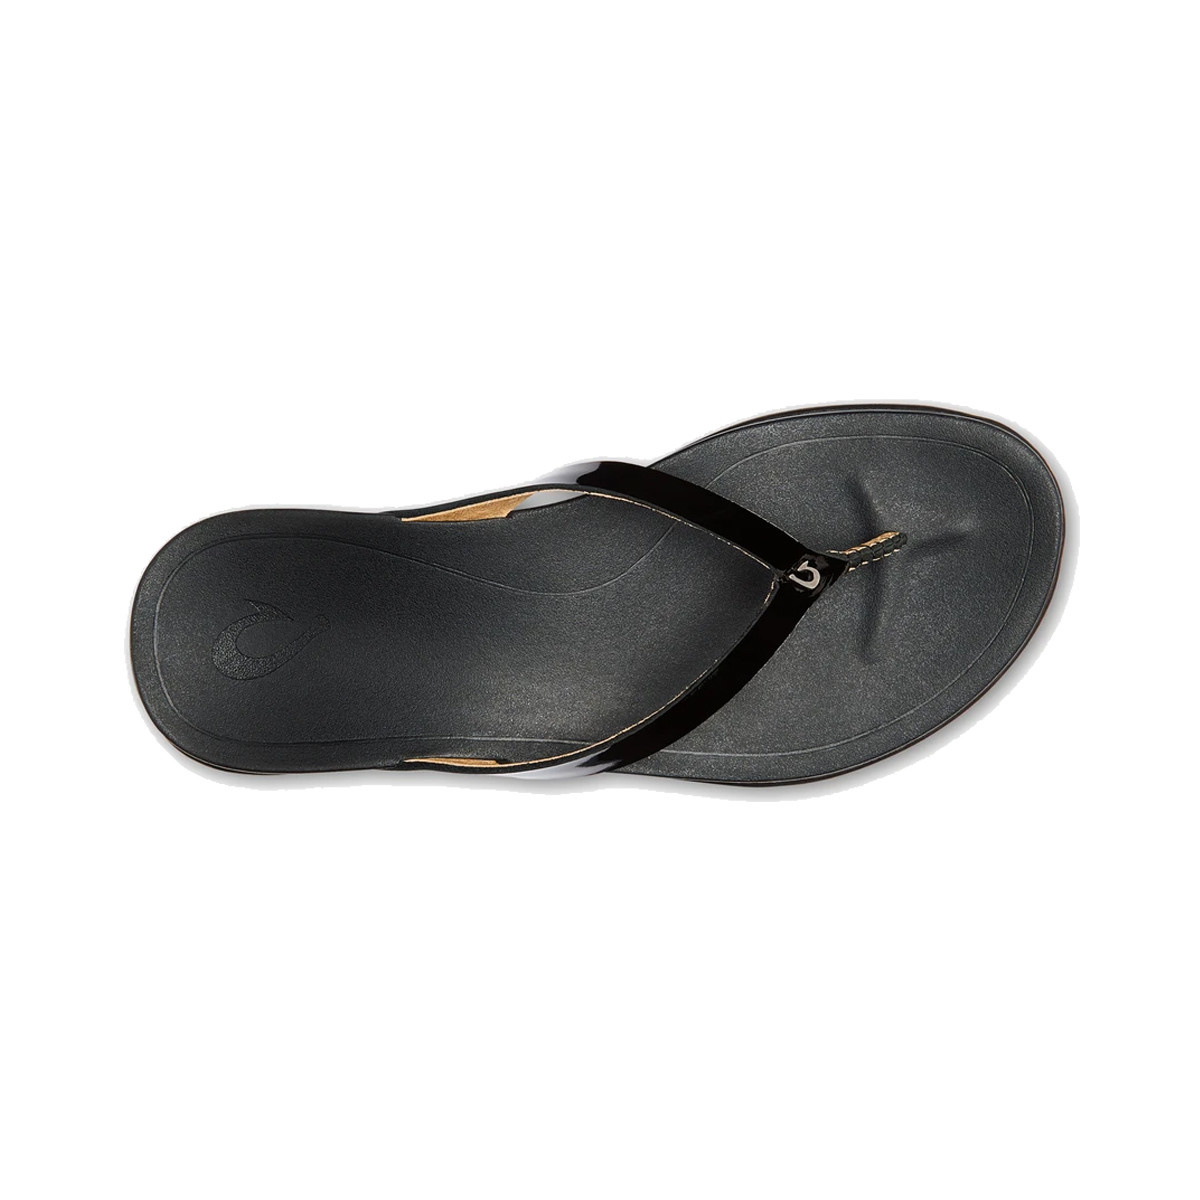 OluKai Olukai Women's Ho'Opio Leather Black/Black